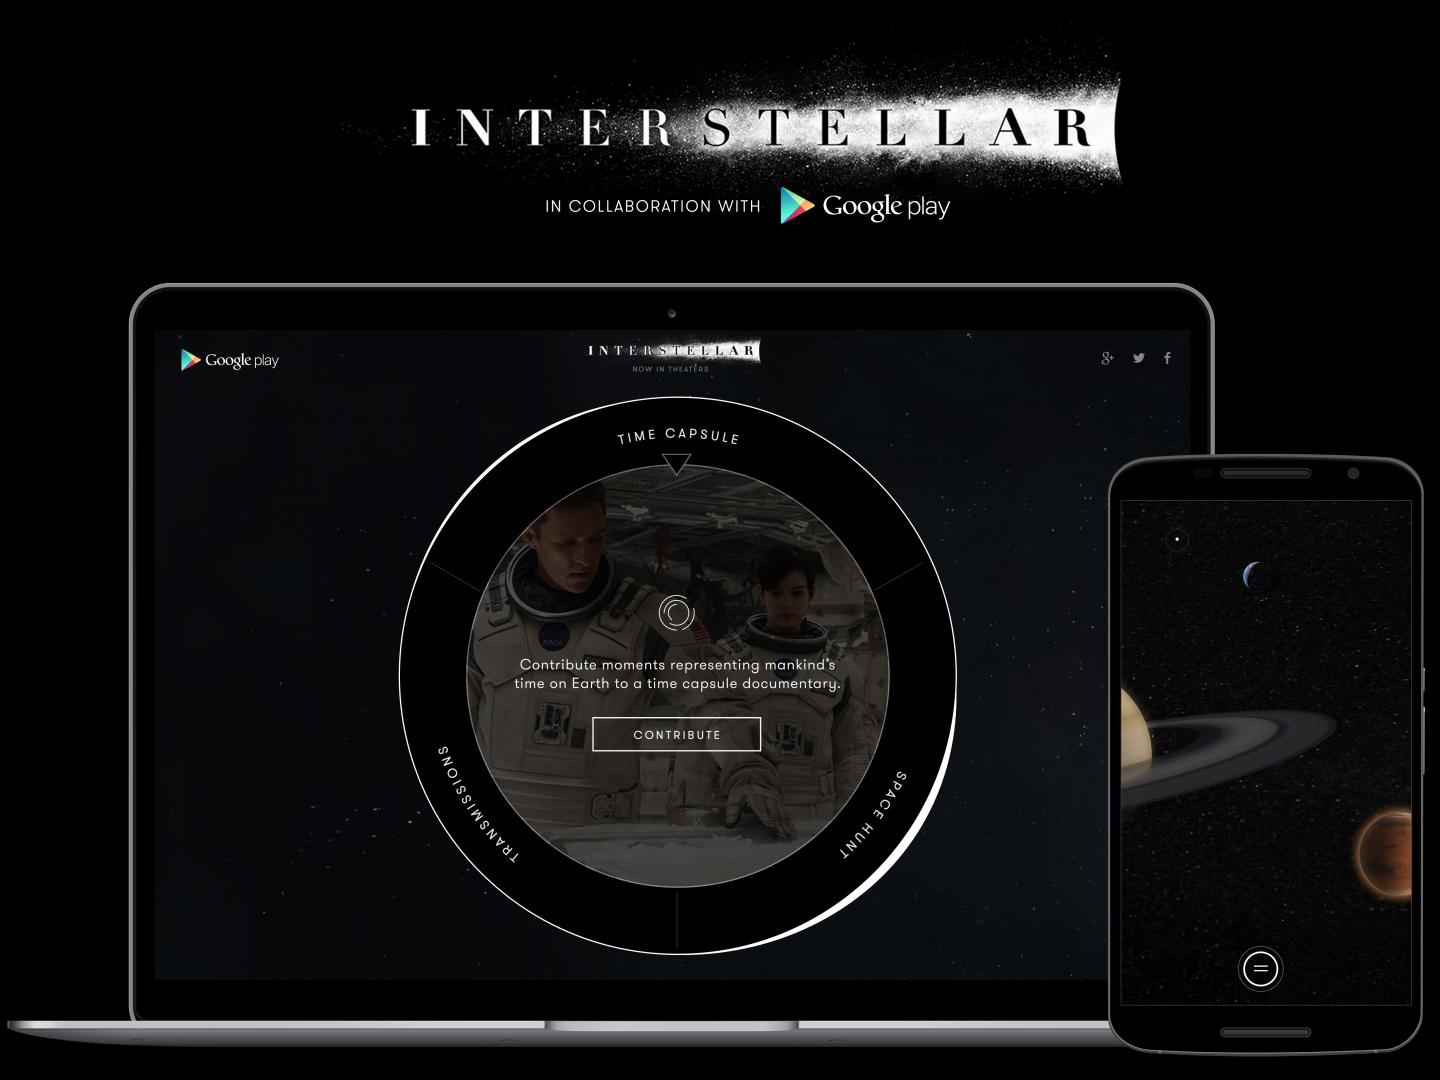 Google Play Launches Fans Into Interstellar Space Thumbnail